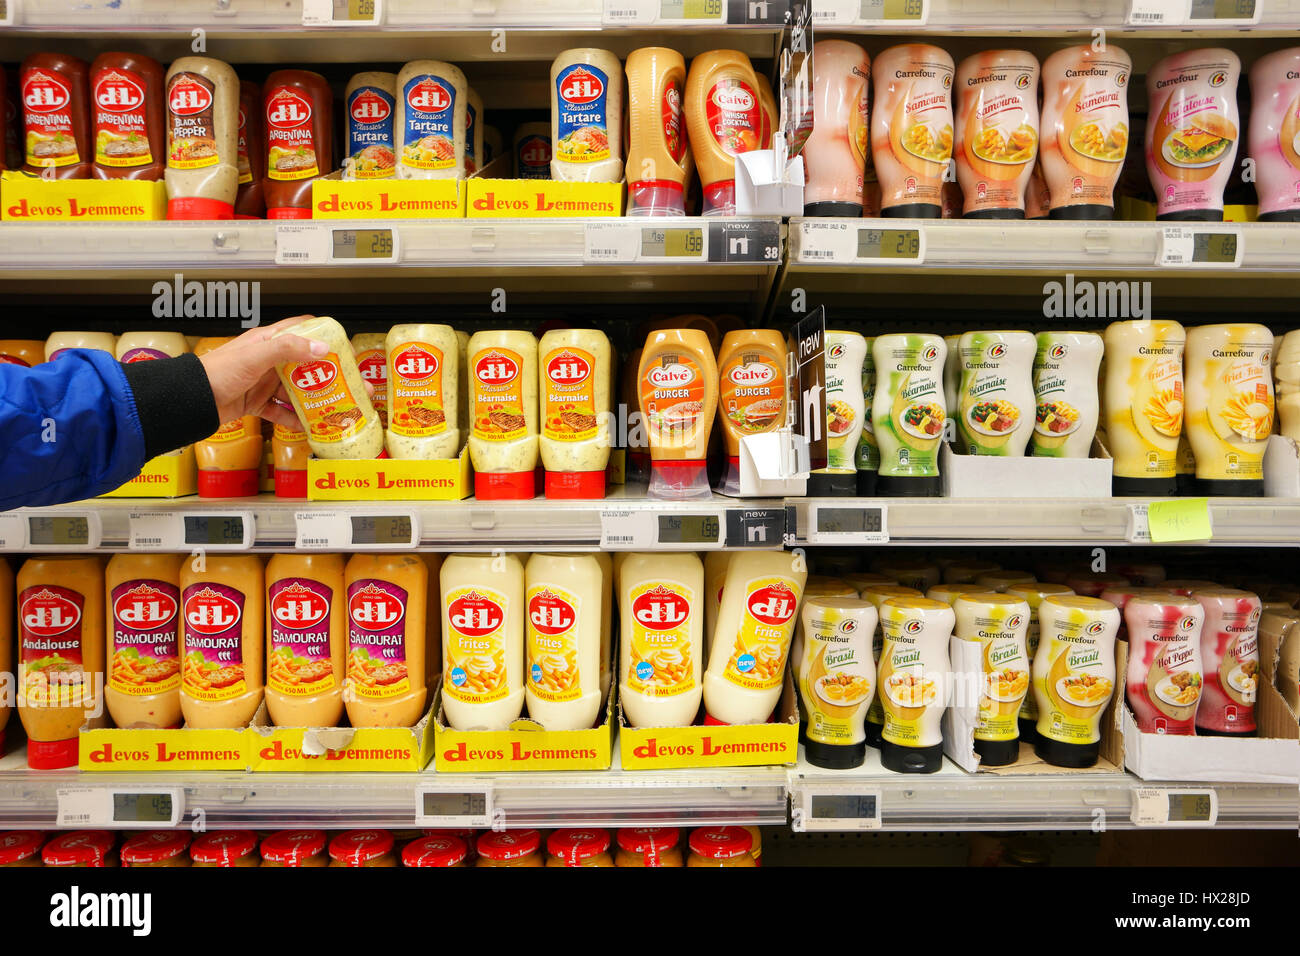 Sauces in a Store - Stock Image